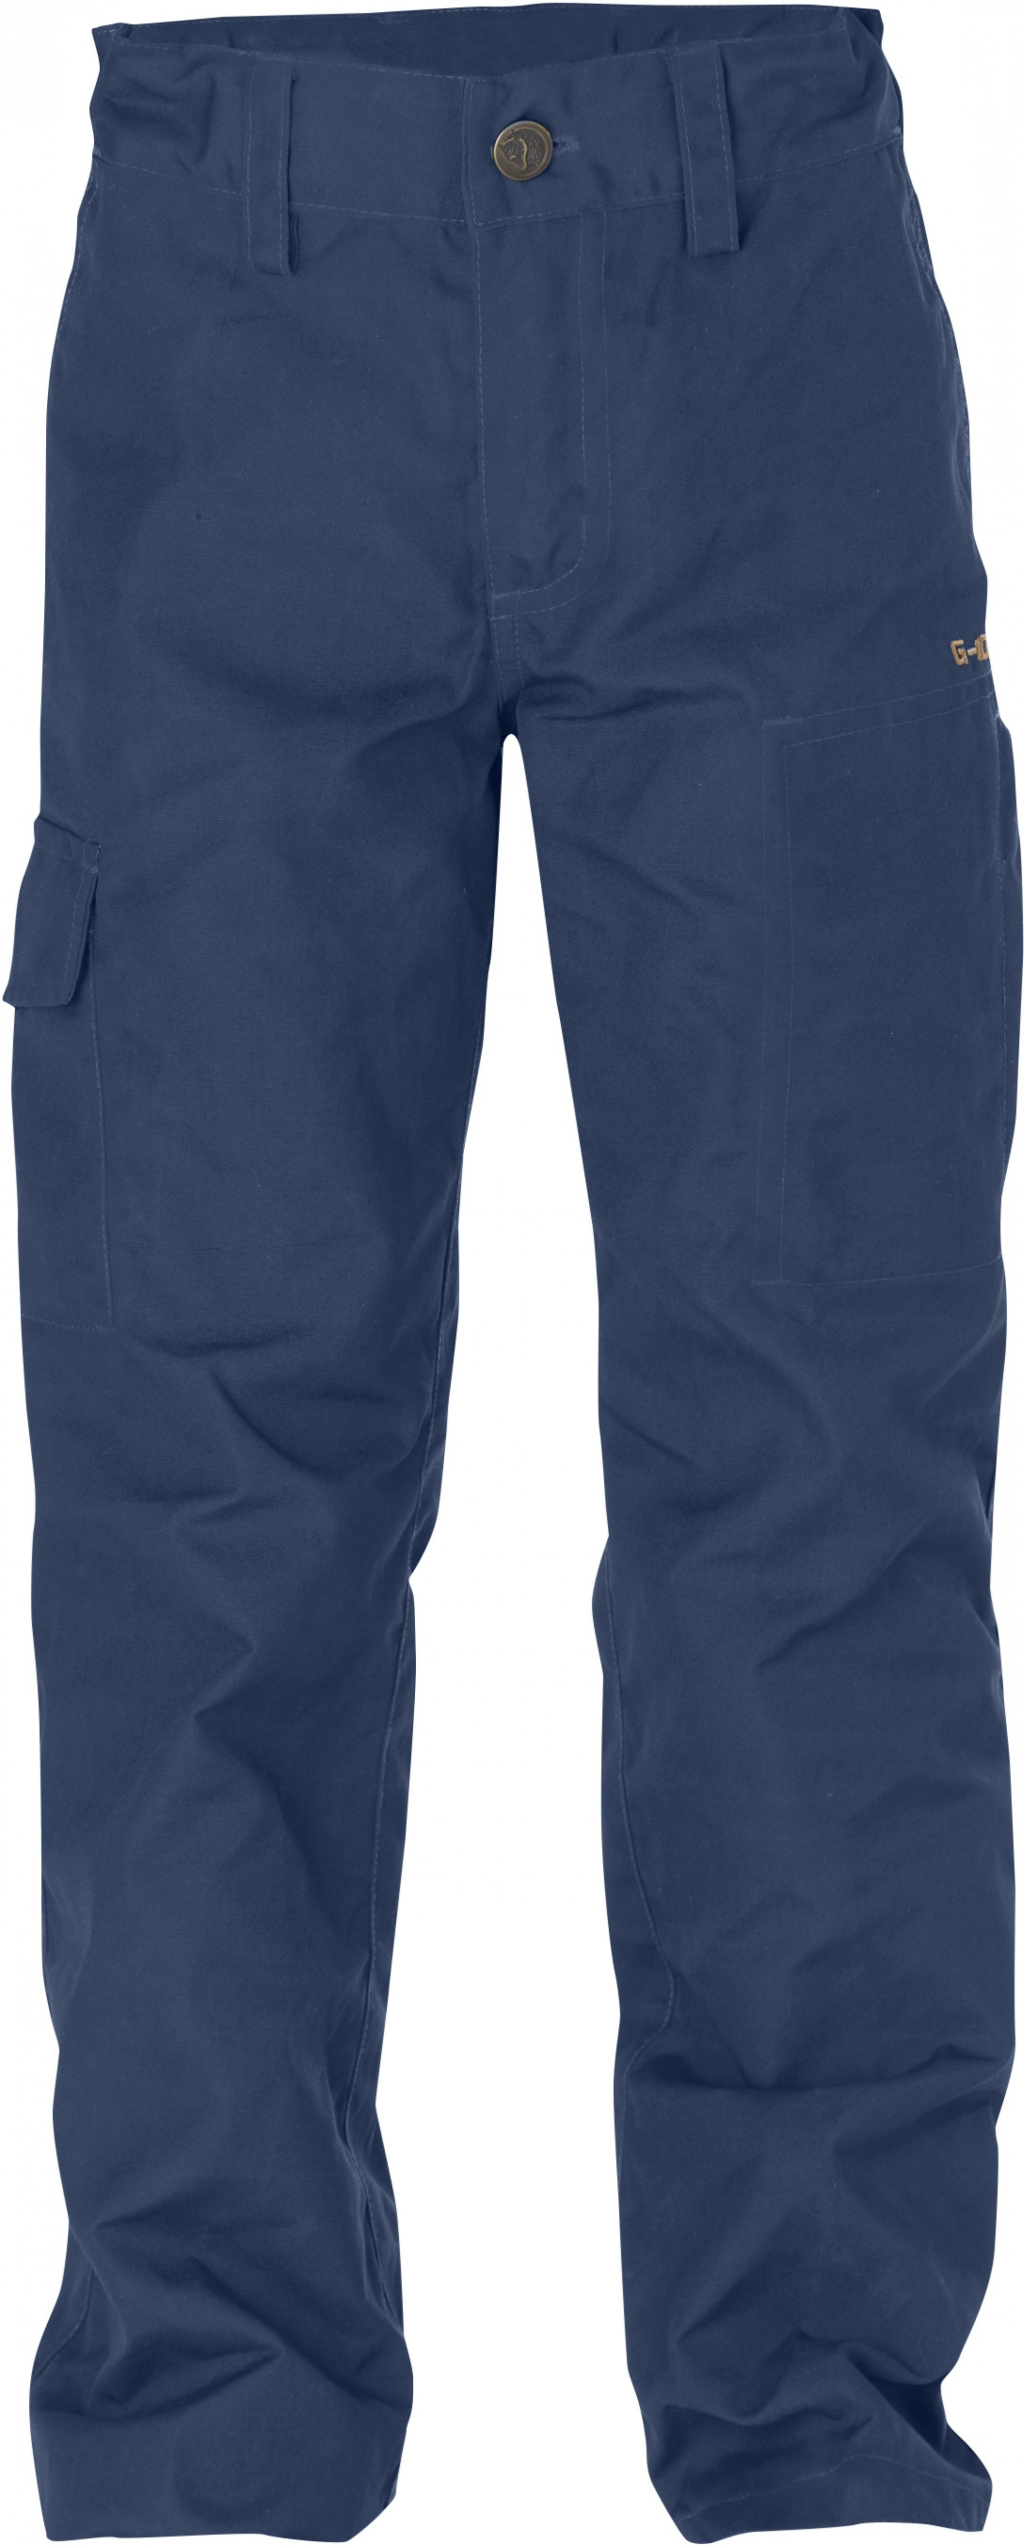 FjallRaven Kids Ovik Trousers Blueberry-30